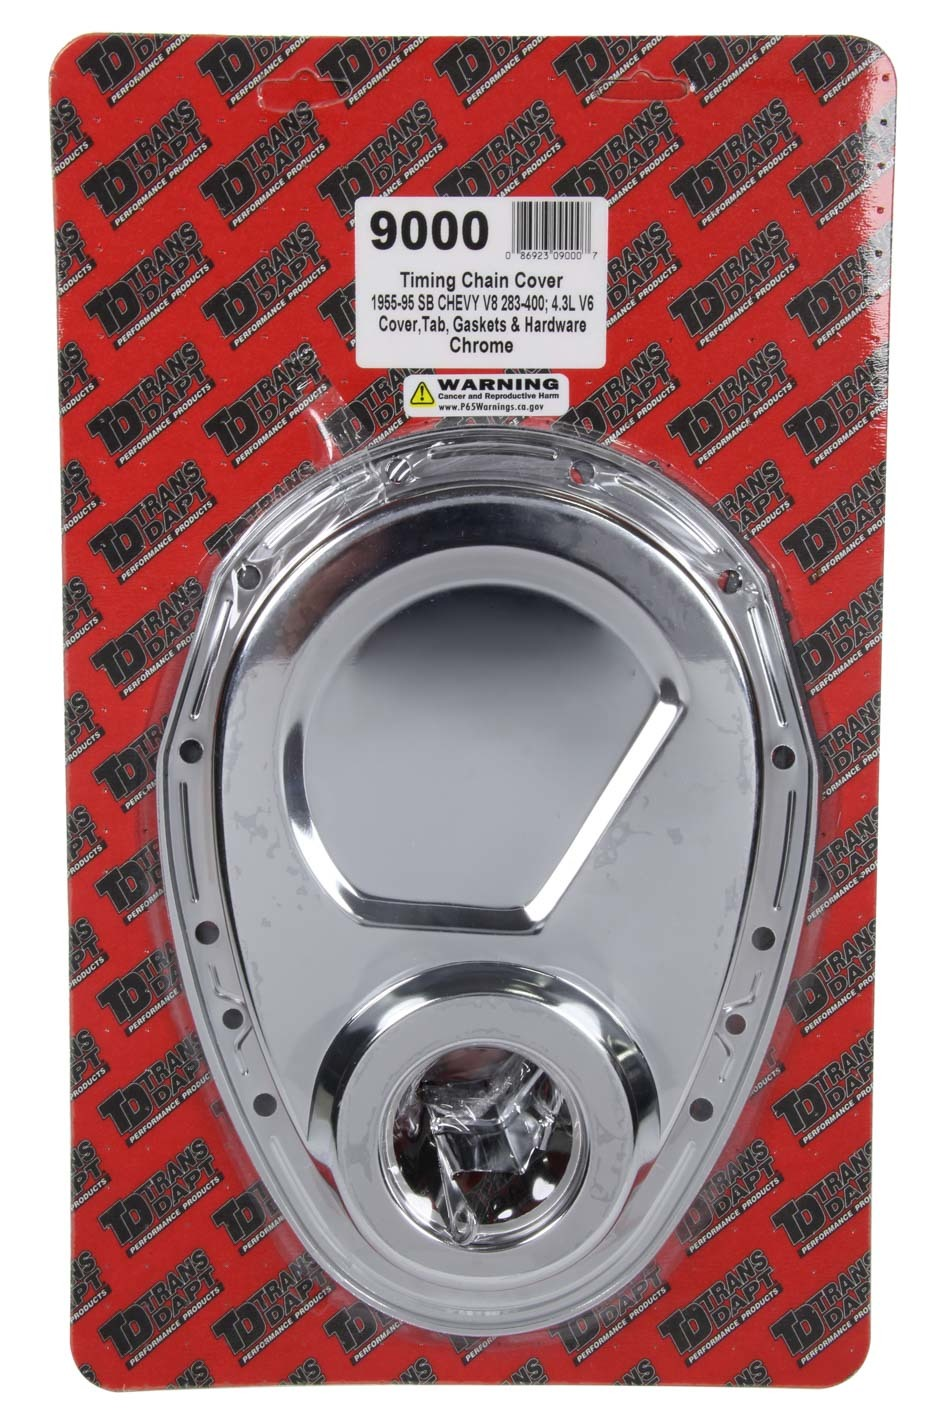 Trans Dapt 9000 Timing Cover, 1 Piece, Timing Tab, Gasket / Hardware / Seal Included, Steel, Chrome, Small Block Chevy, Kit